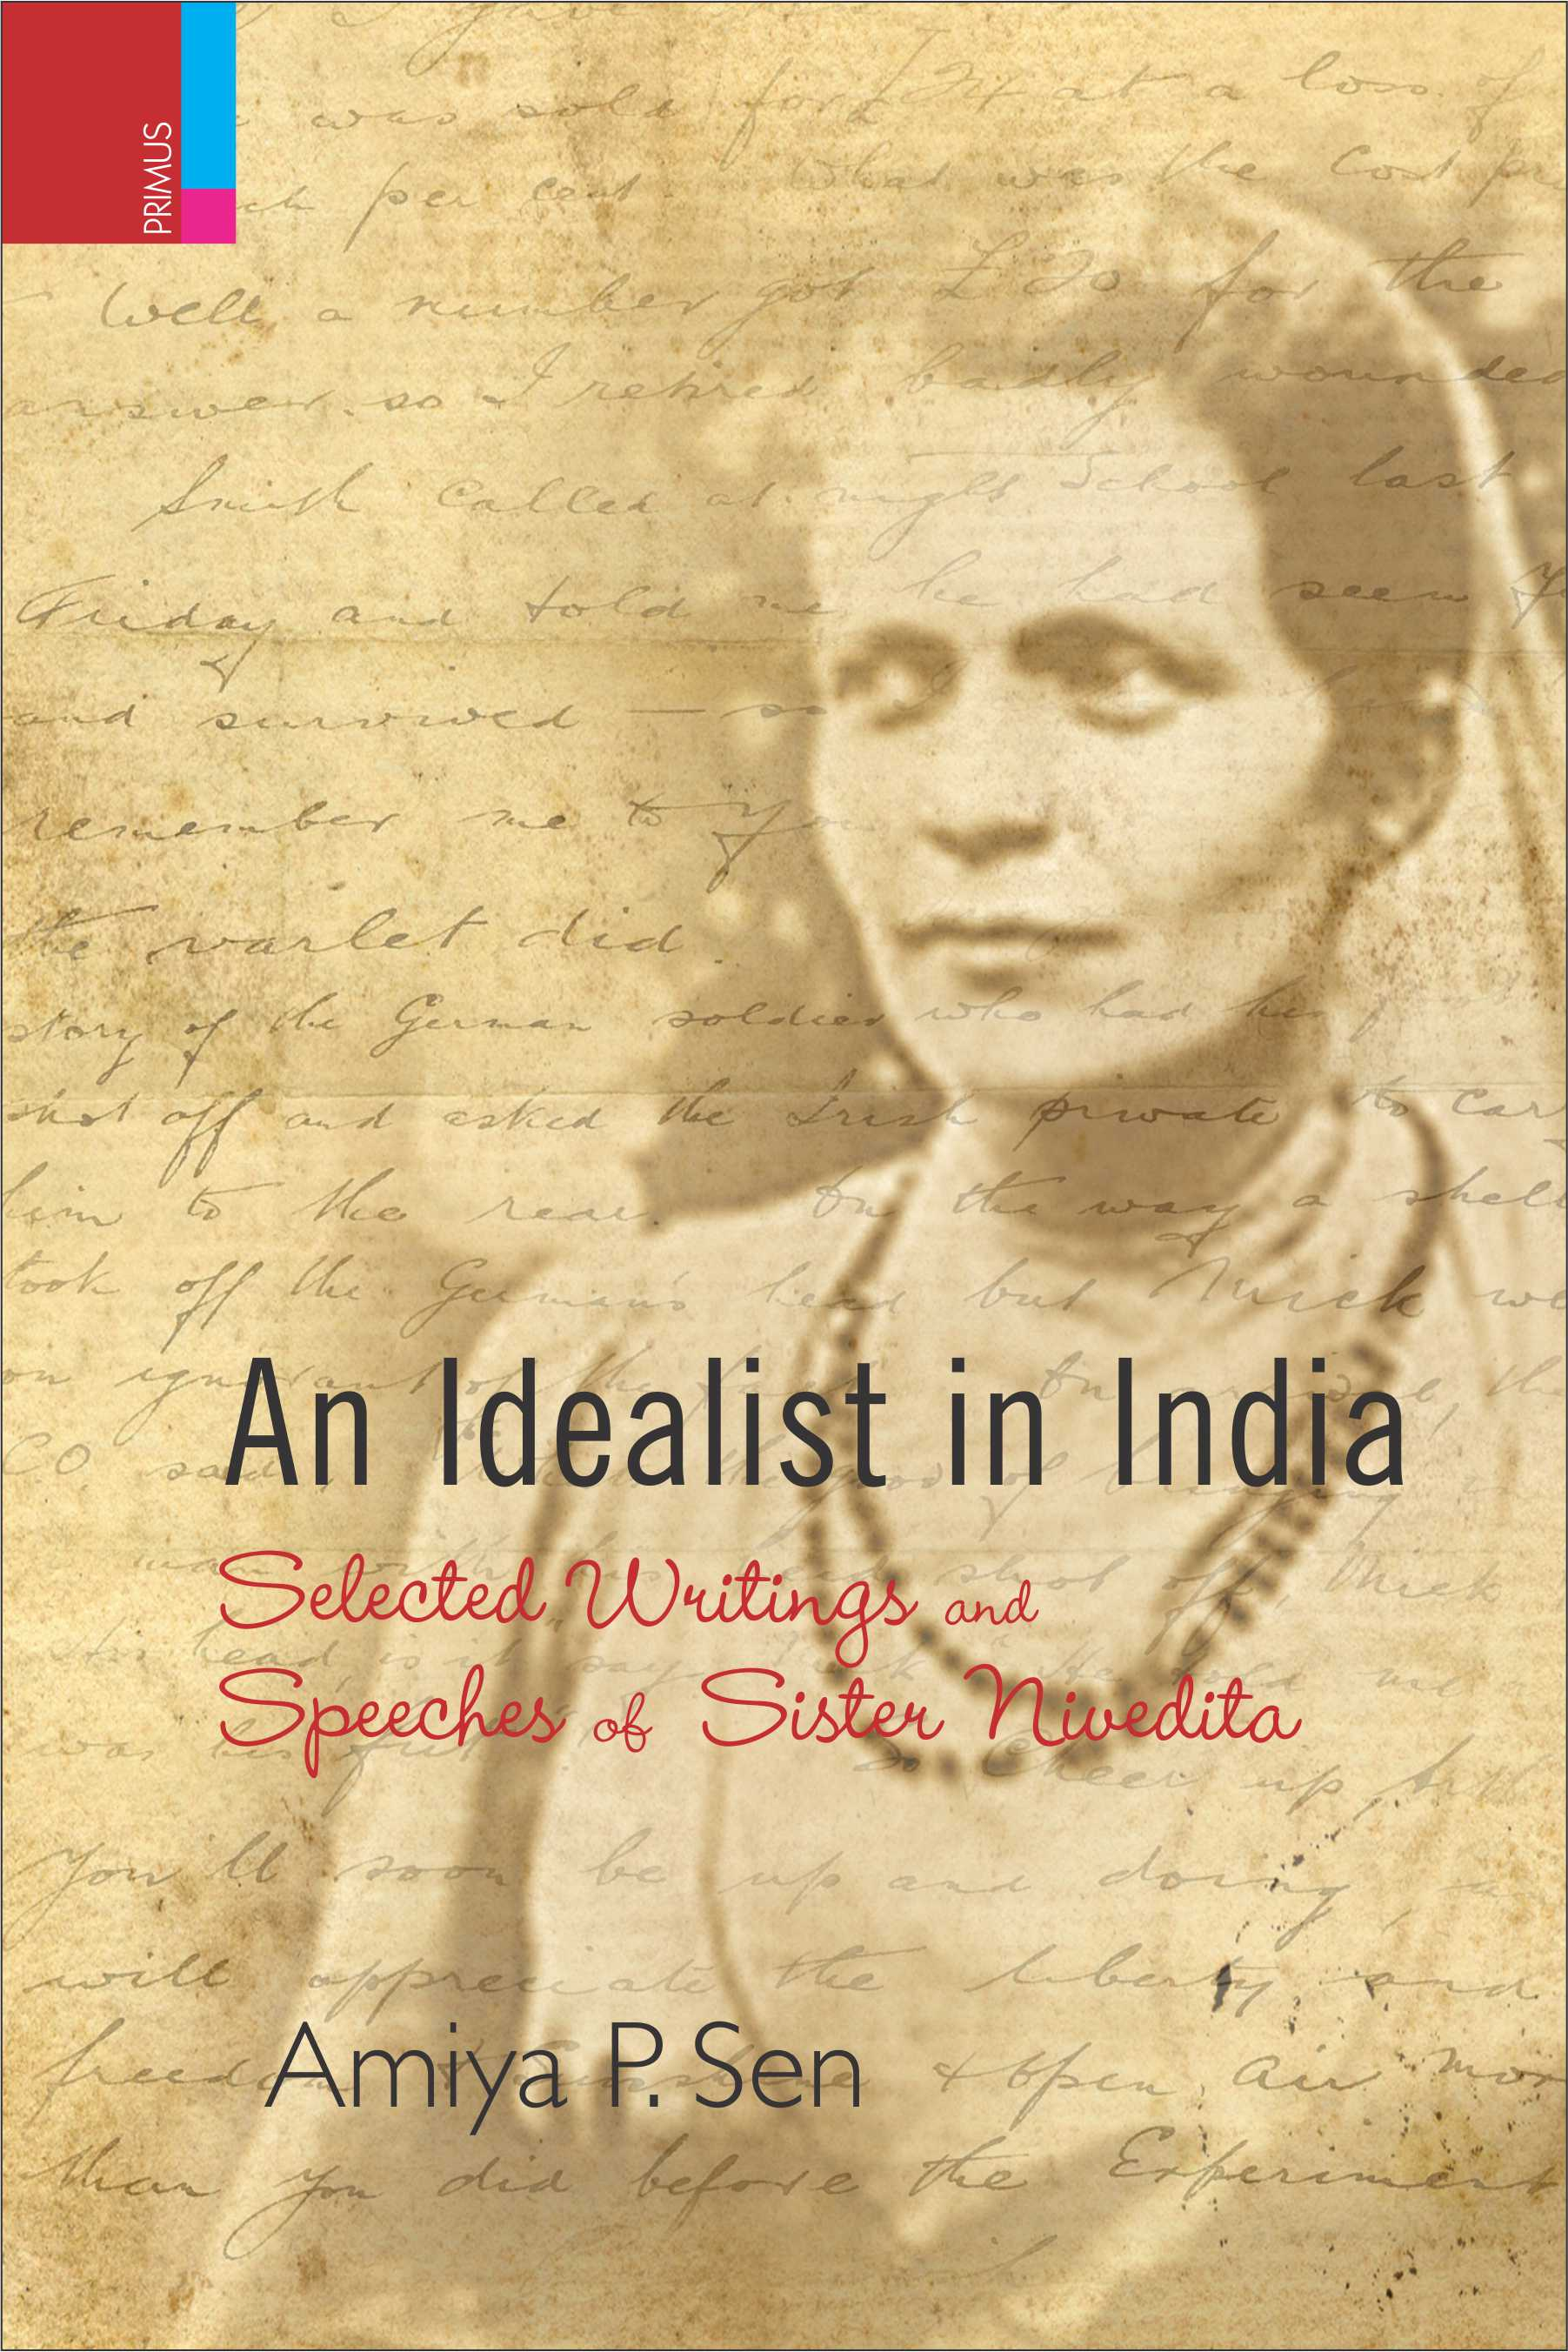 An Idealist in India